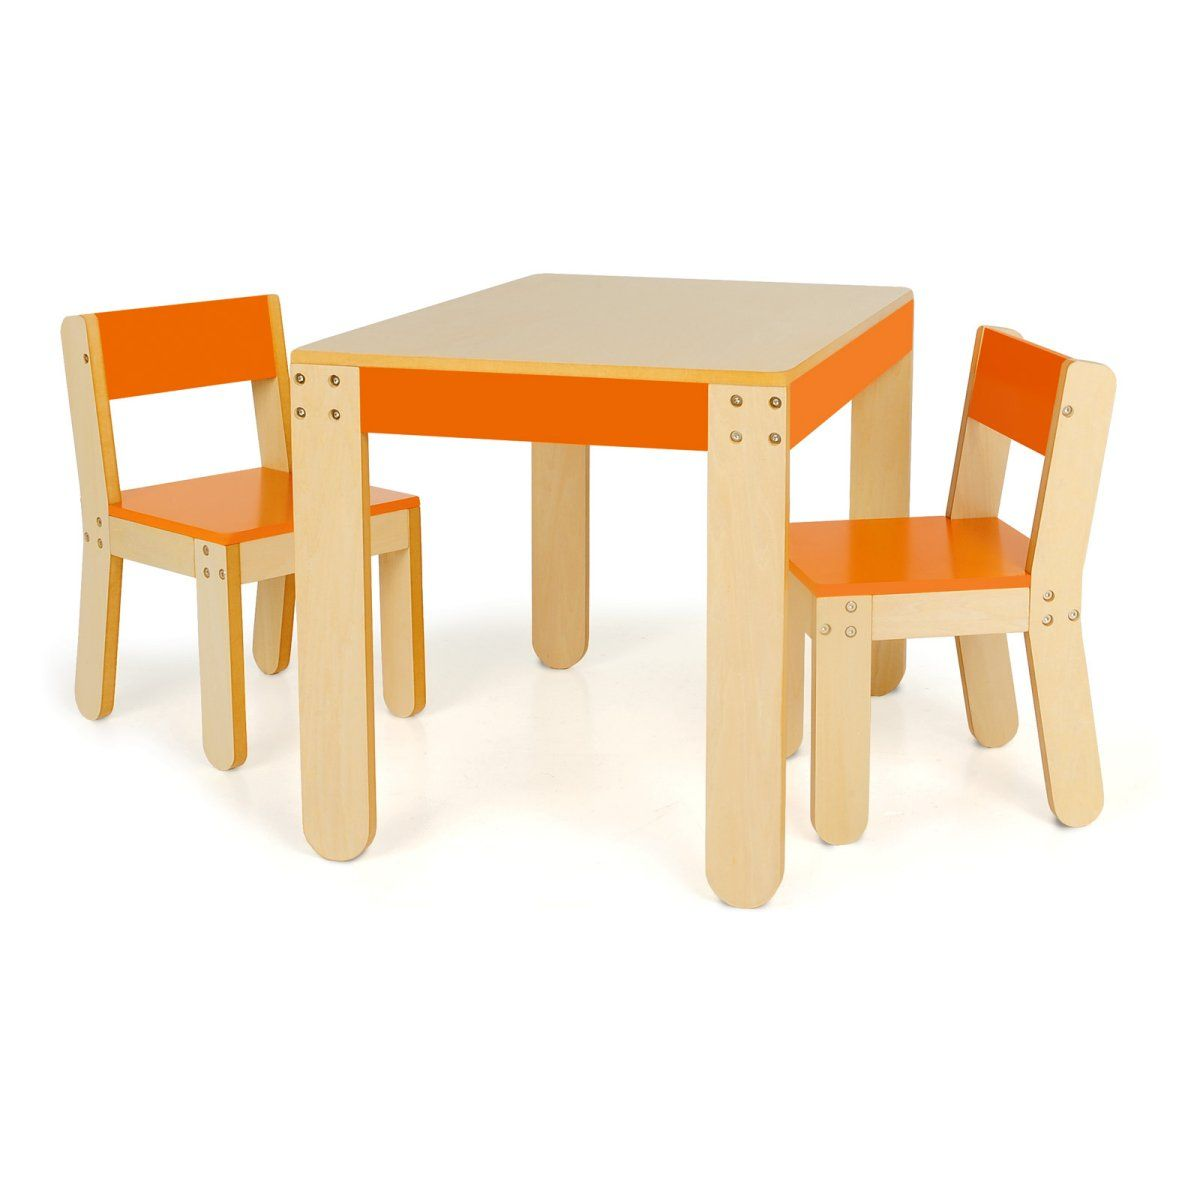 Wonderful image of  Dining Table And Chairs Interesting Childrens Set Kitchen Sets Argos with #CC4900 color and 1200x1200 pixels